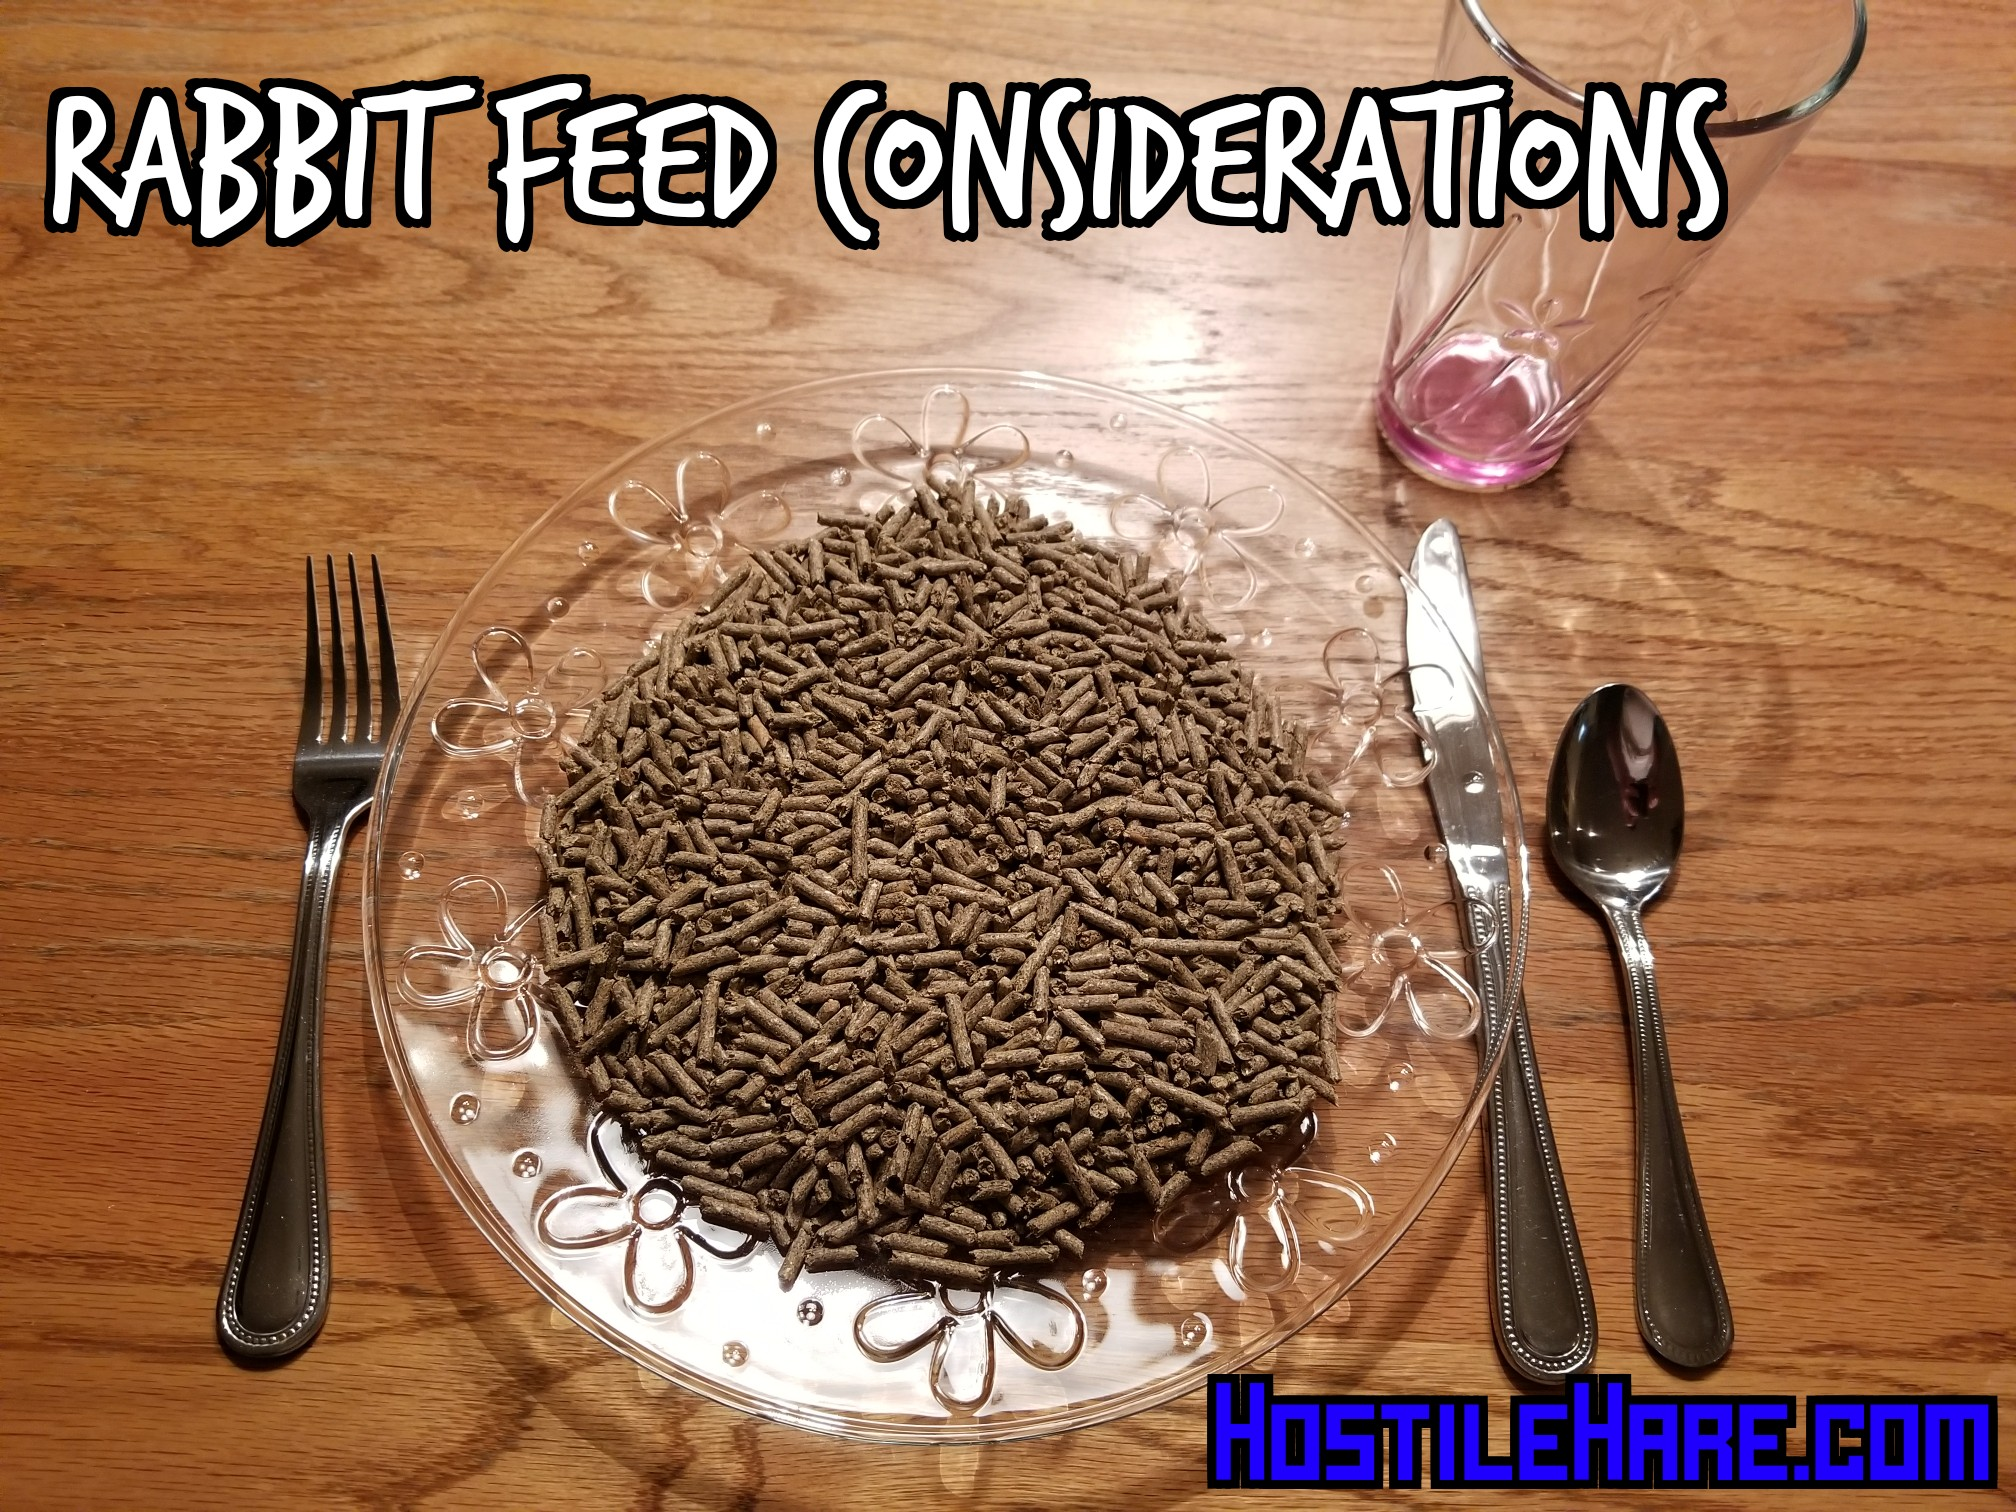 There are many things to consider when choosing rabbit feed